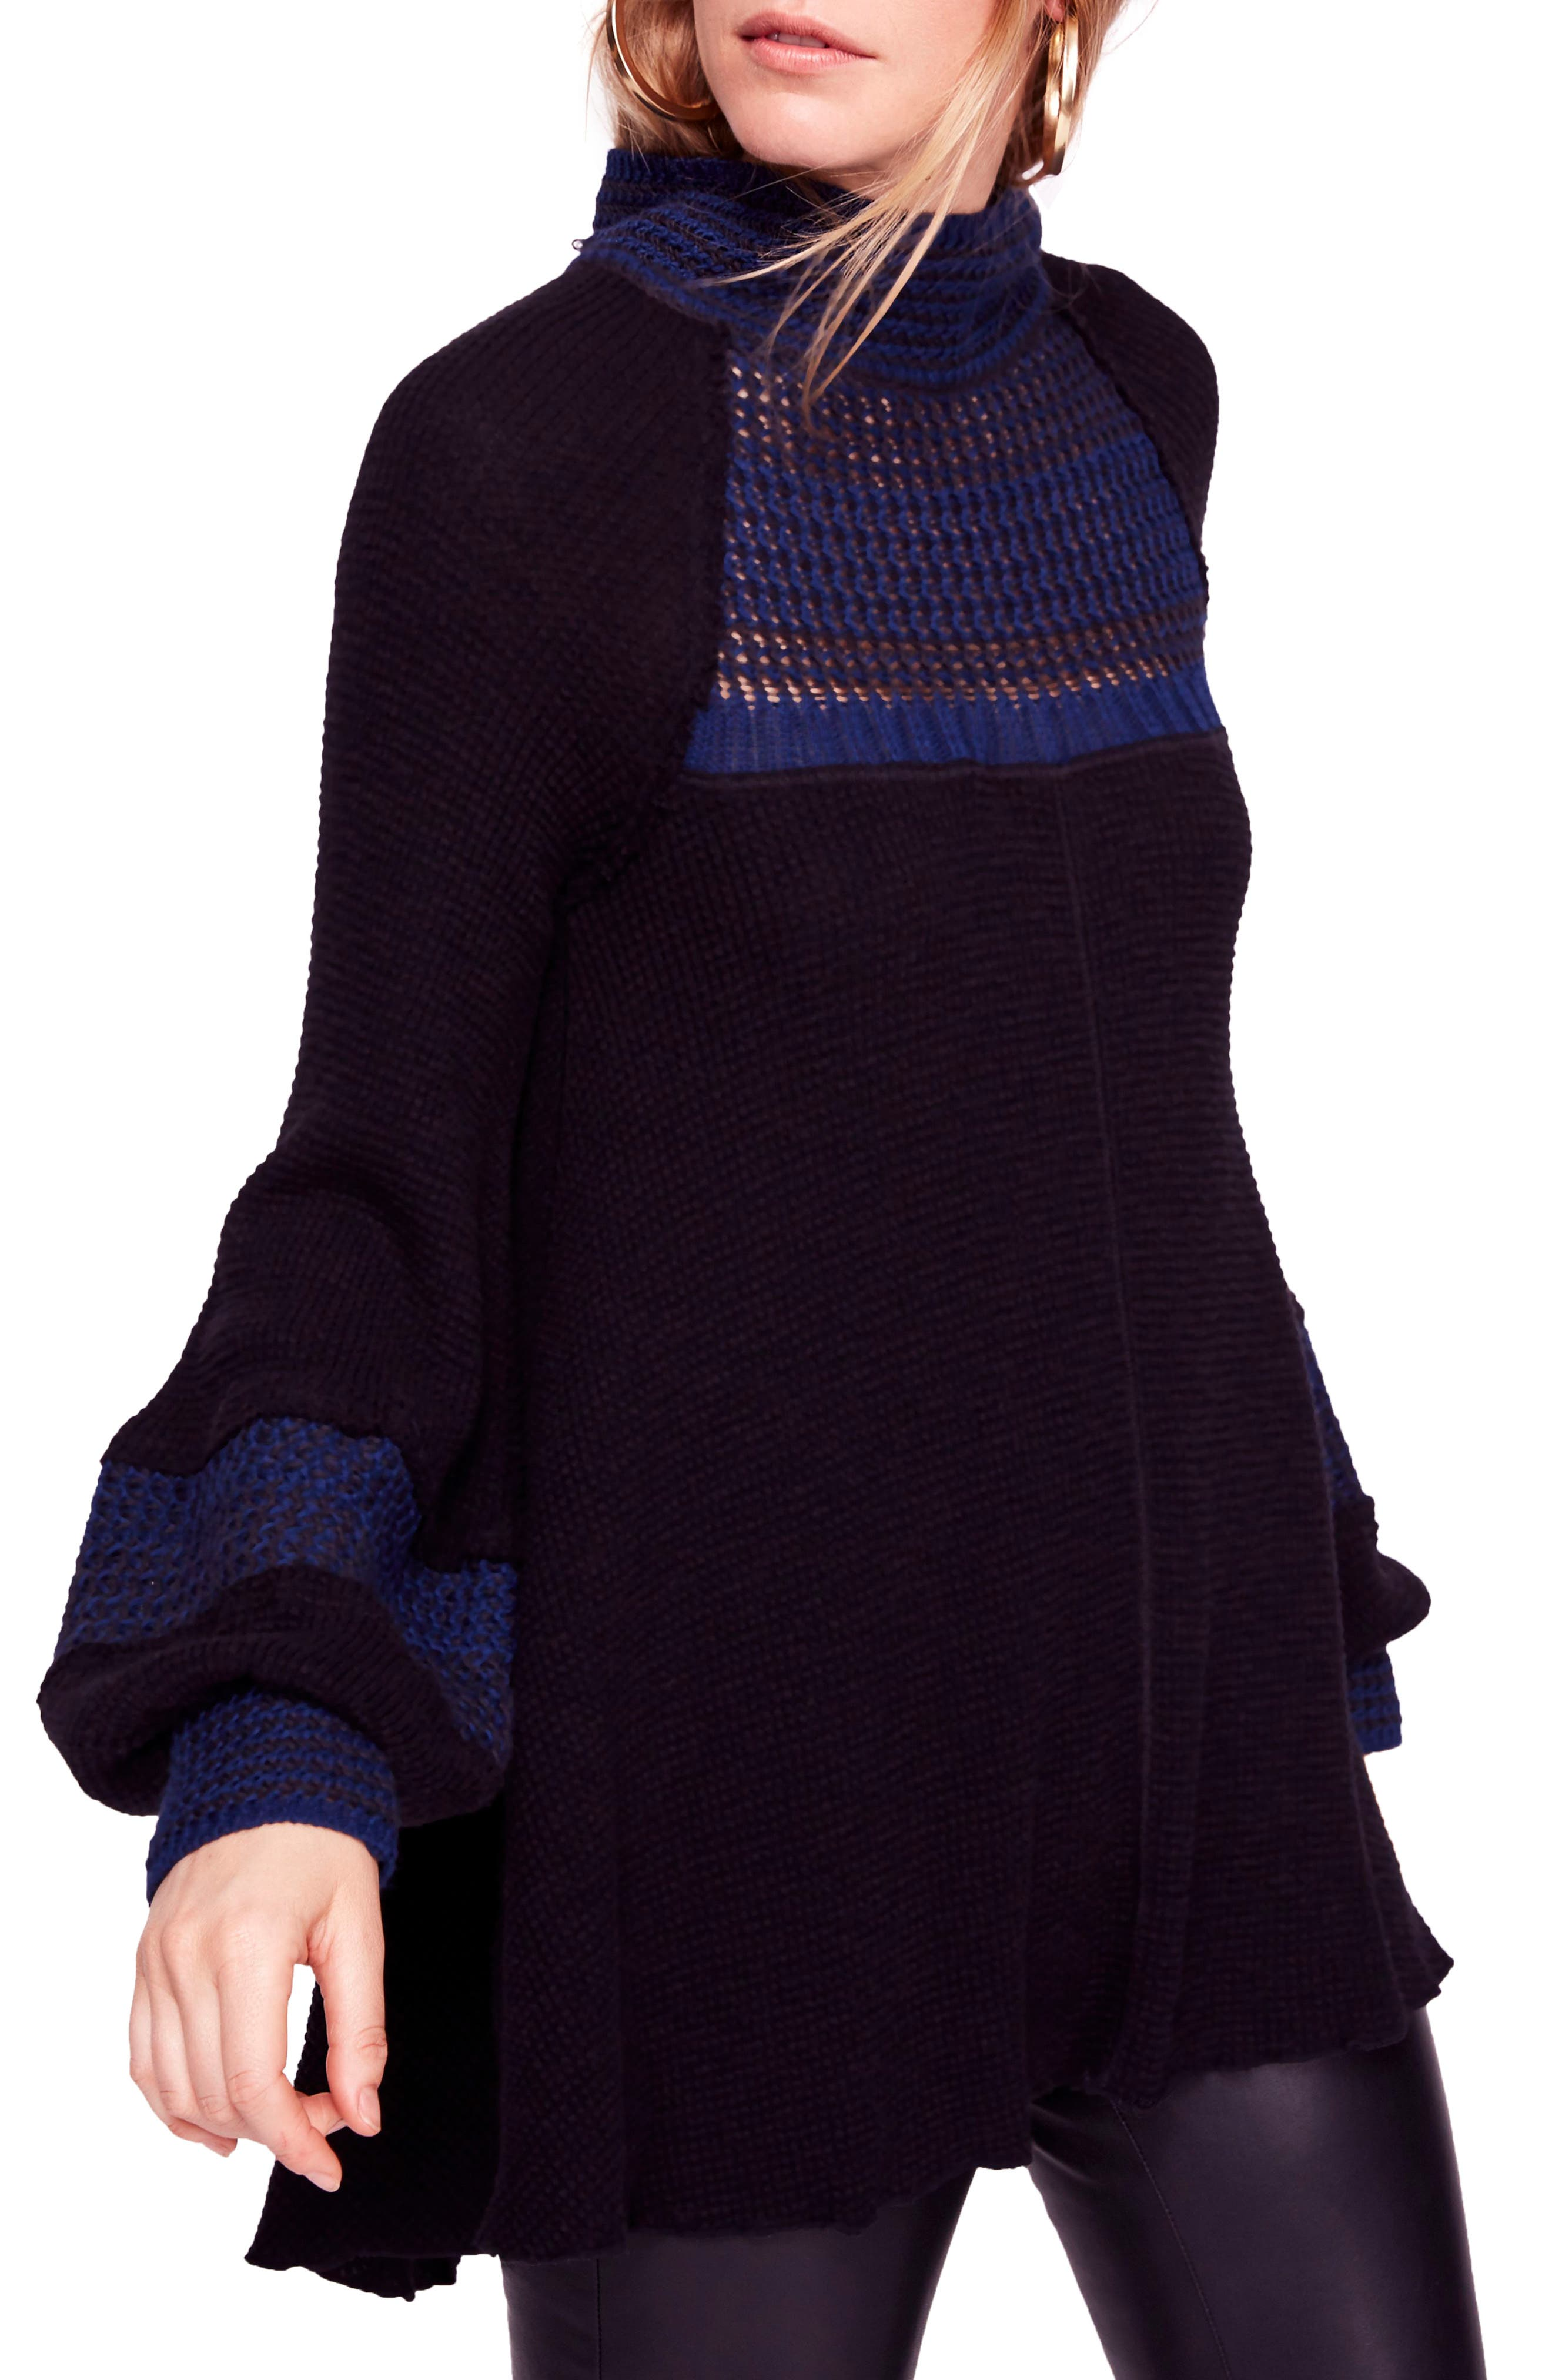 Snow Day Balloon Sleeve Sweater by Free People